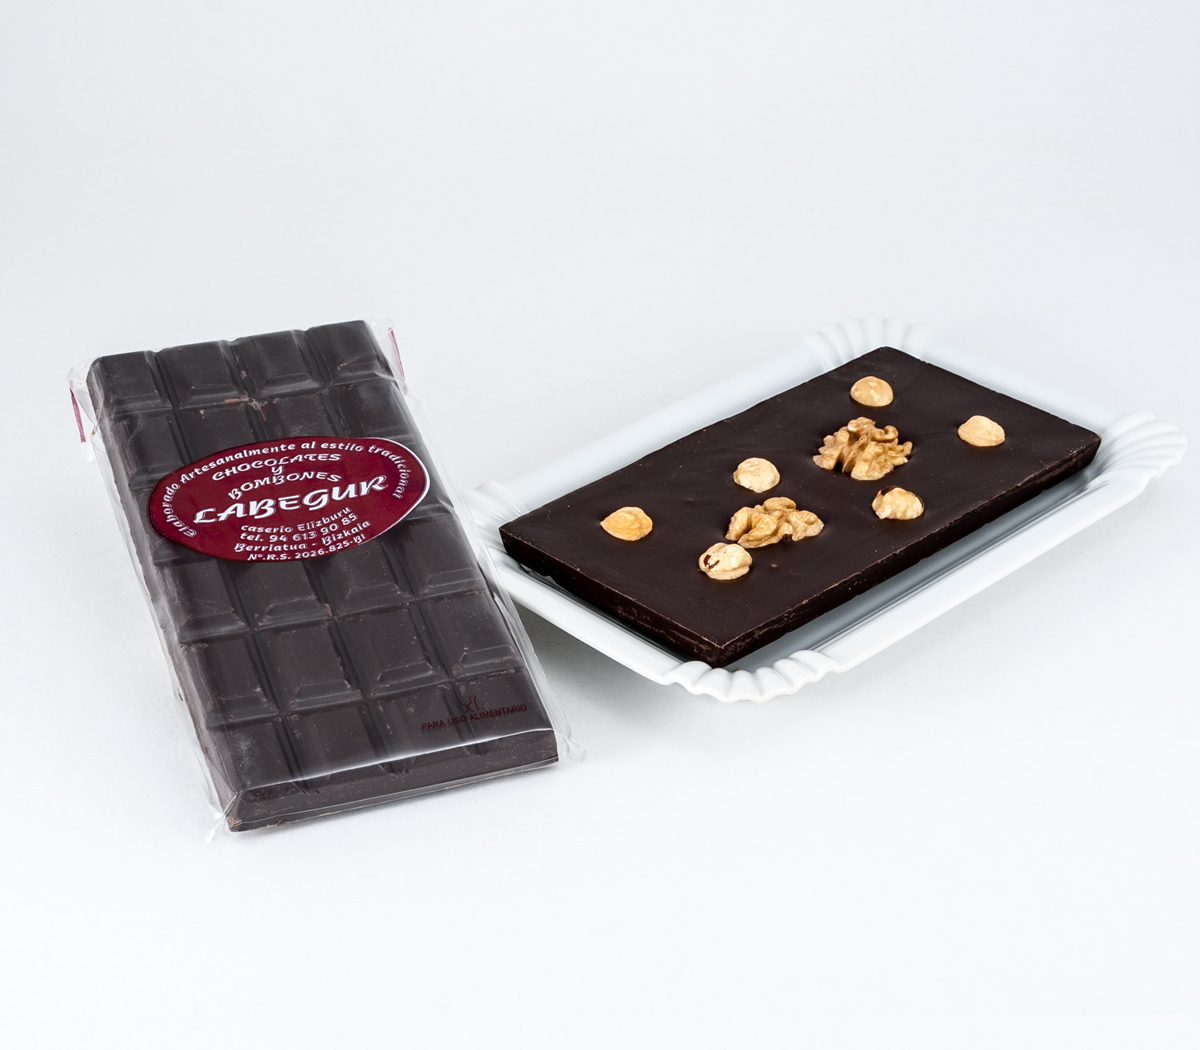 TABLETA CHOCOLATE CON FRUTOS SECOS LABEGUR